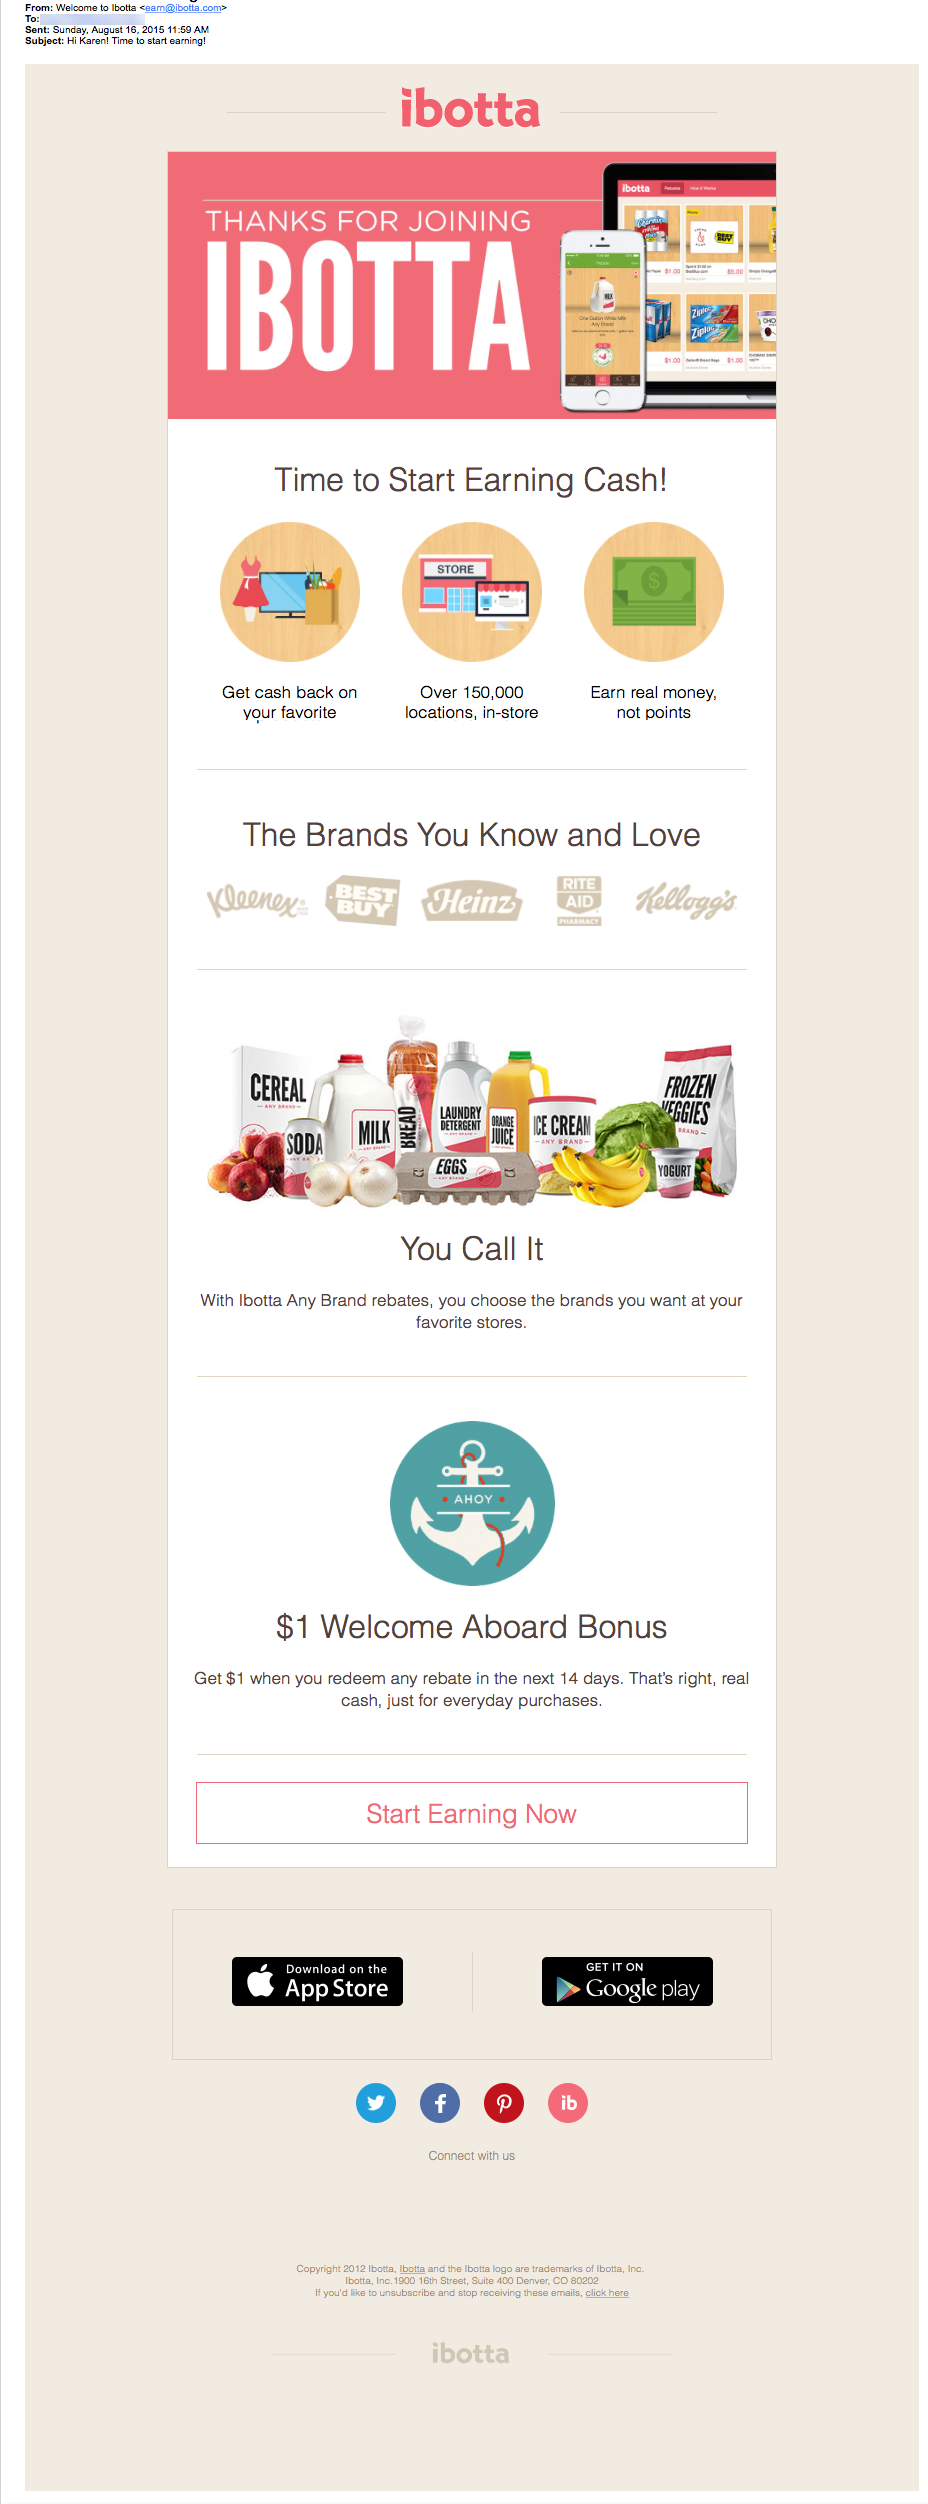 Ibotta Email Review: Does this welcome campaign fit the bill